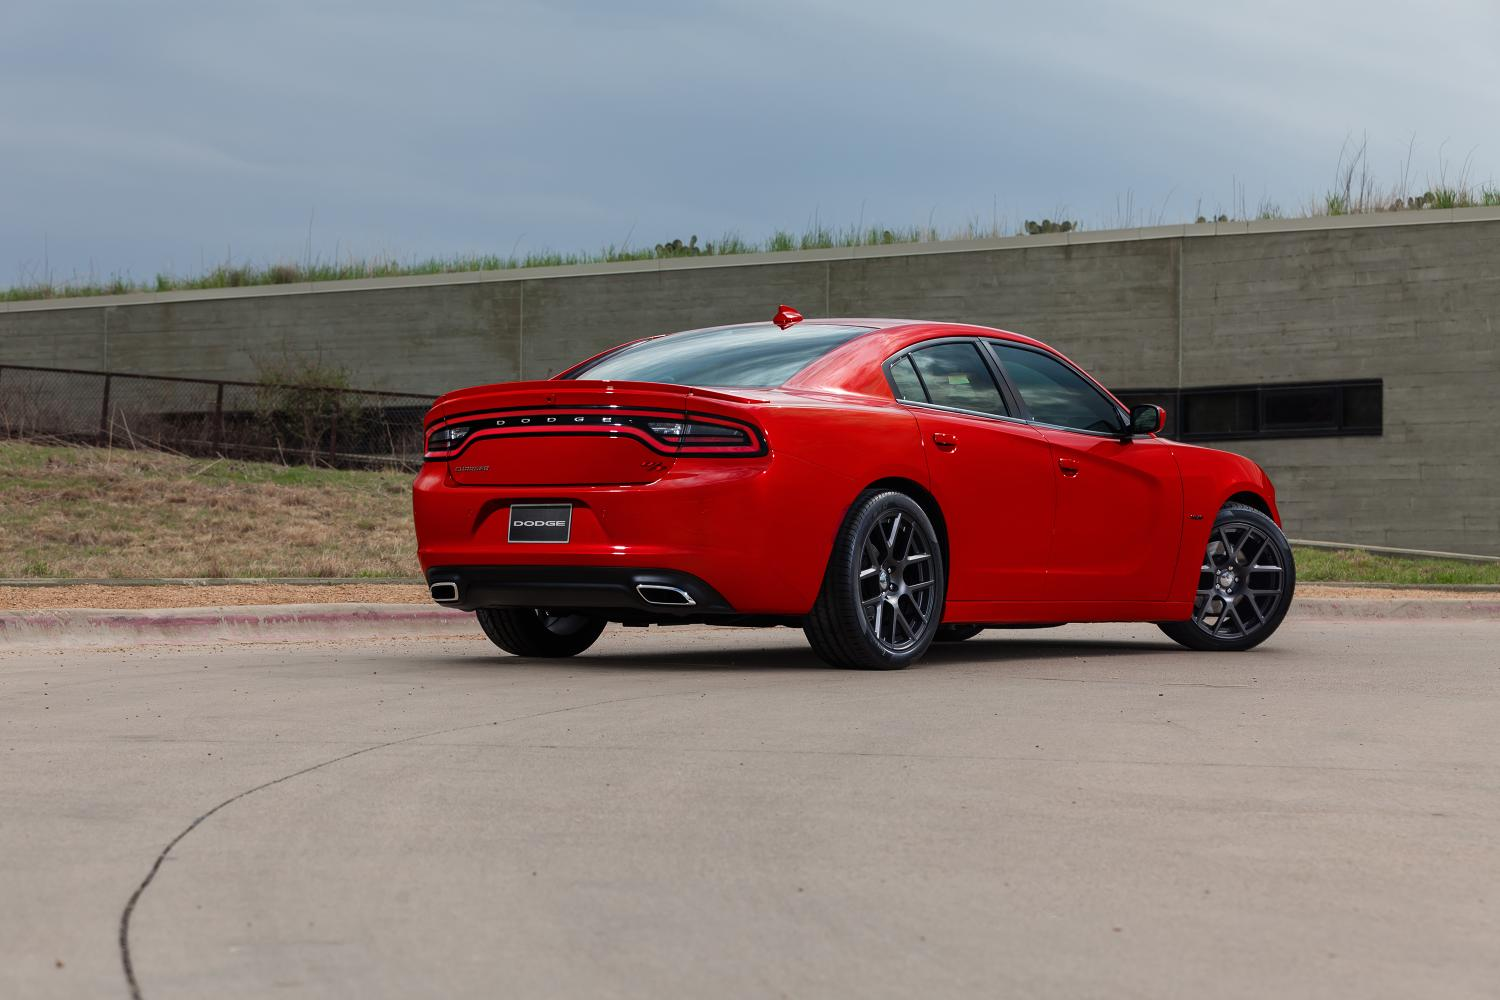 2015 Dodge Charger rear